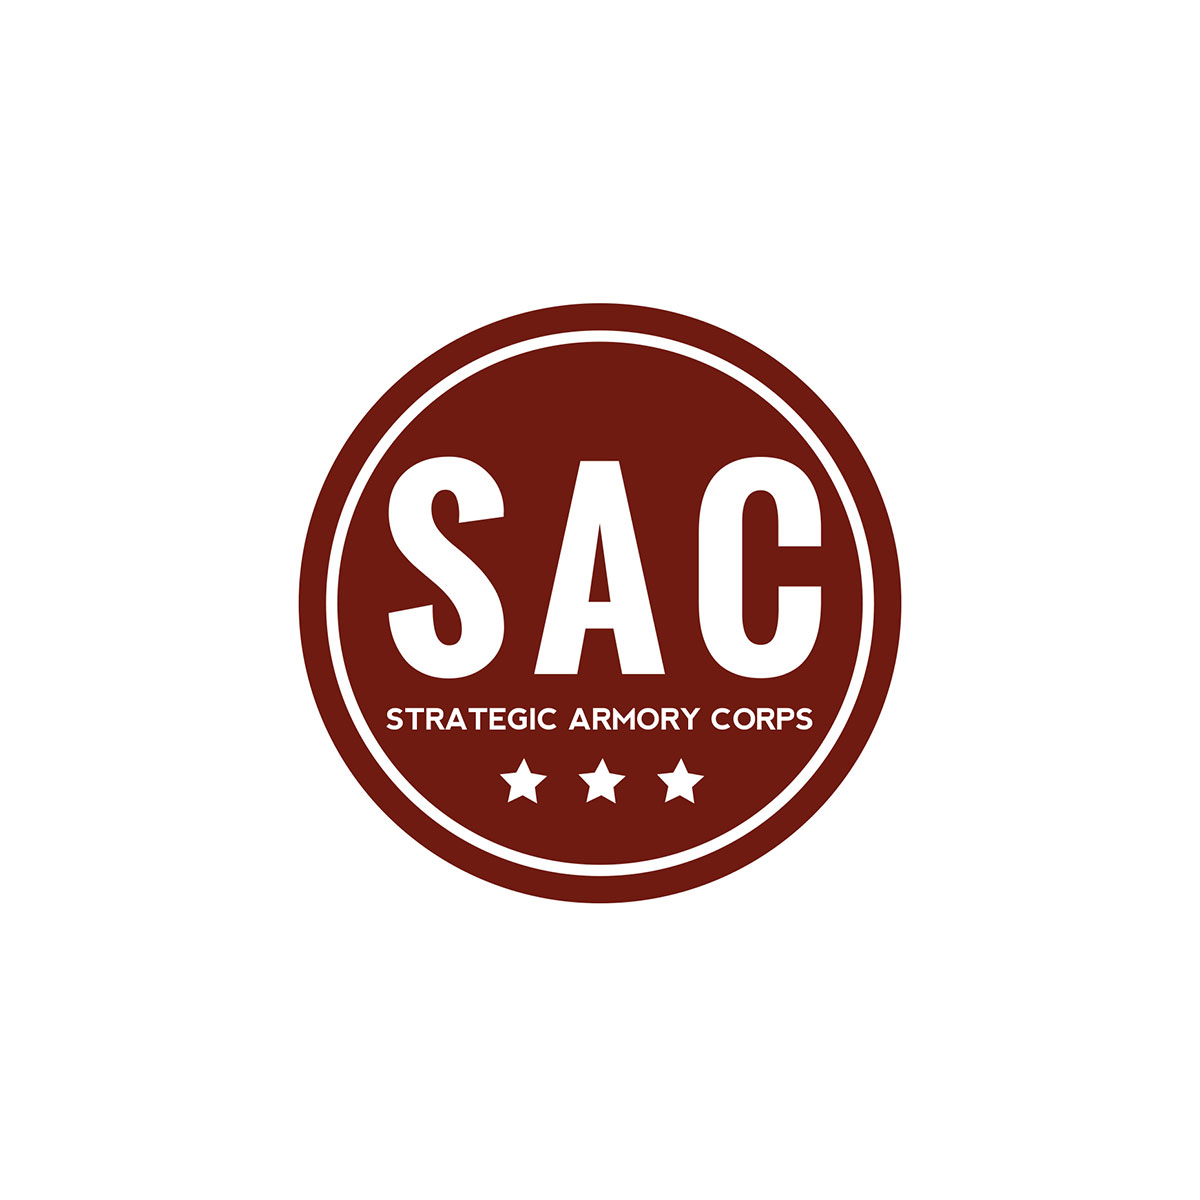 Strategic Armory Corps (S.A.C.)